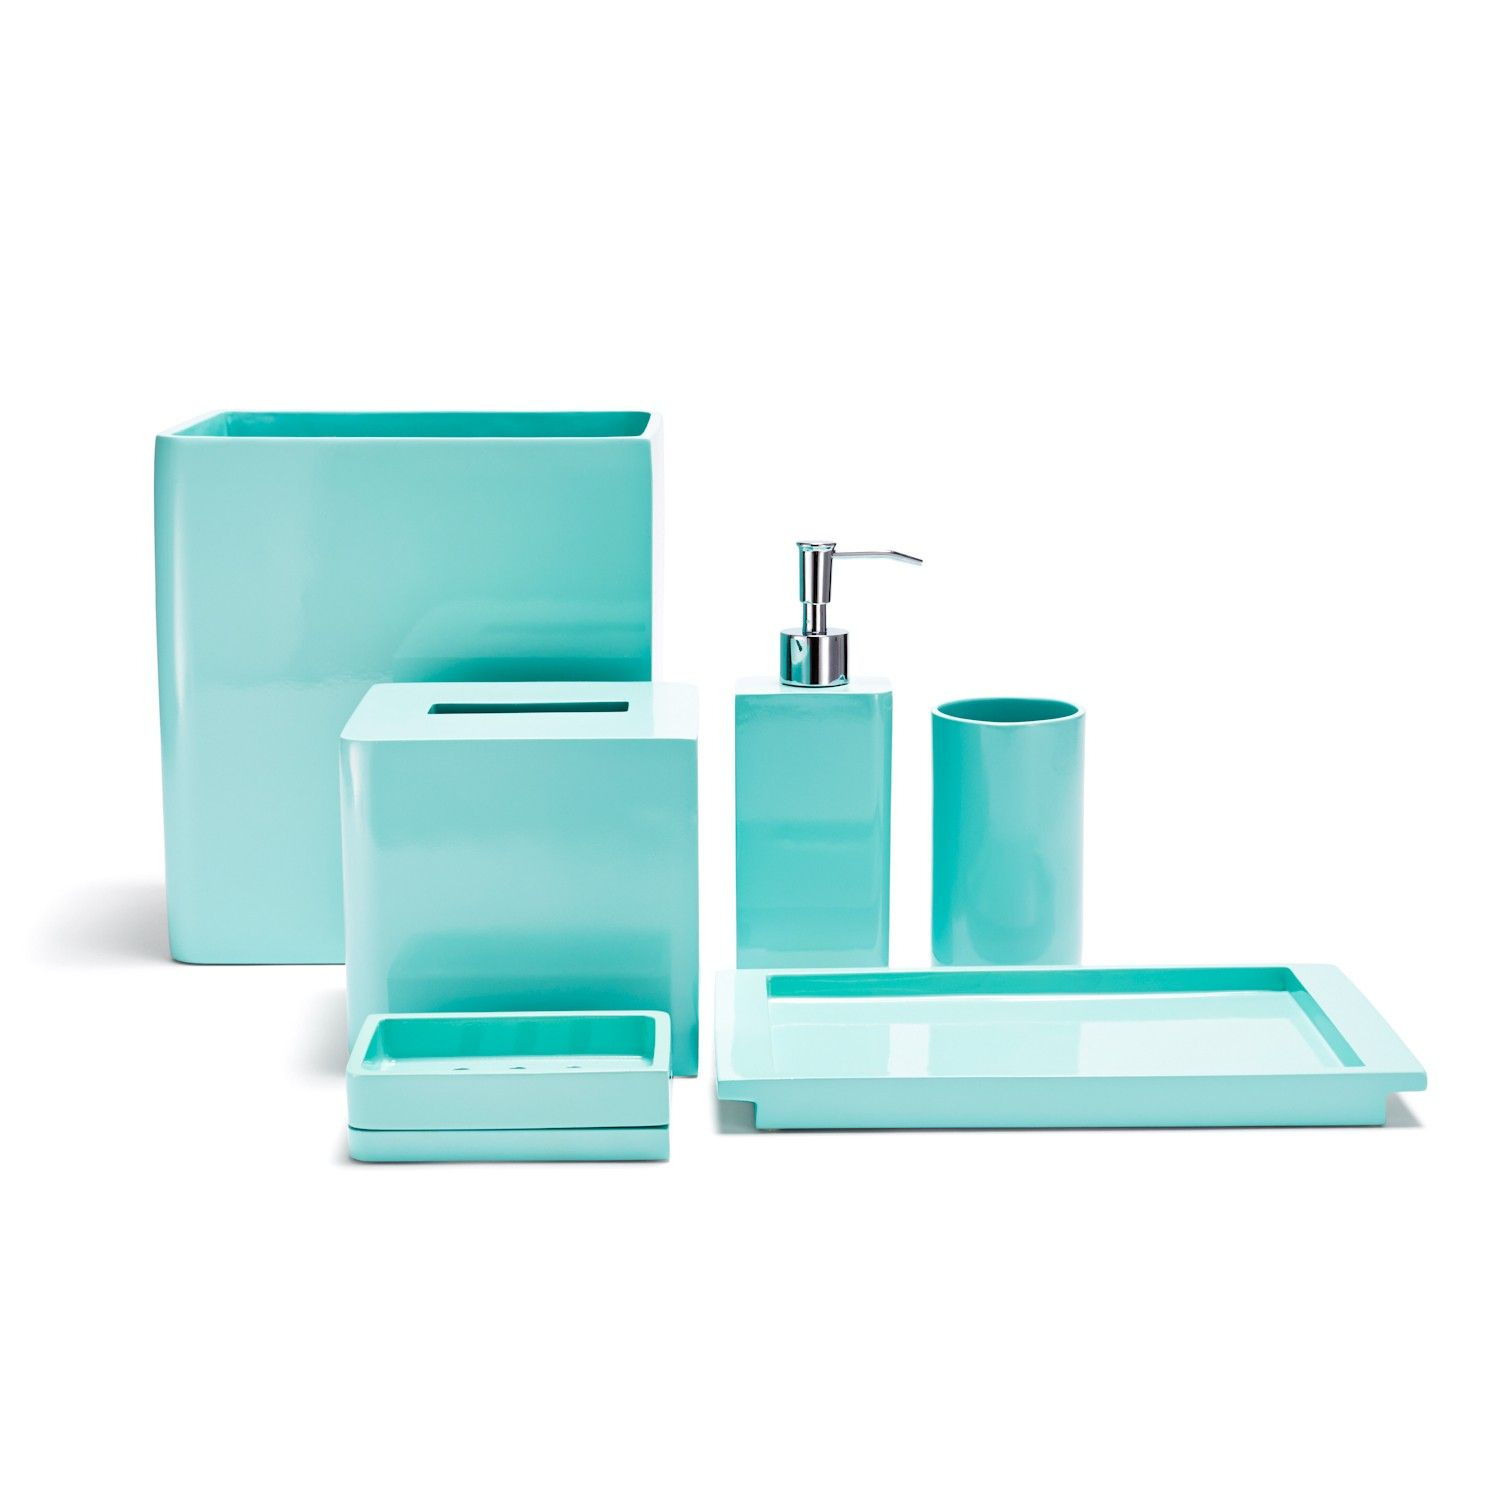 Unique Turquoise Bathroom Accessories For Decoration Lighthousepe